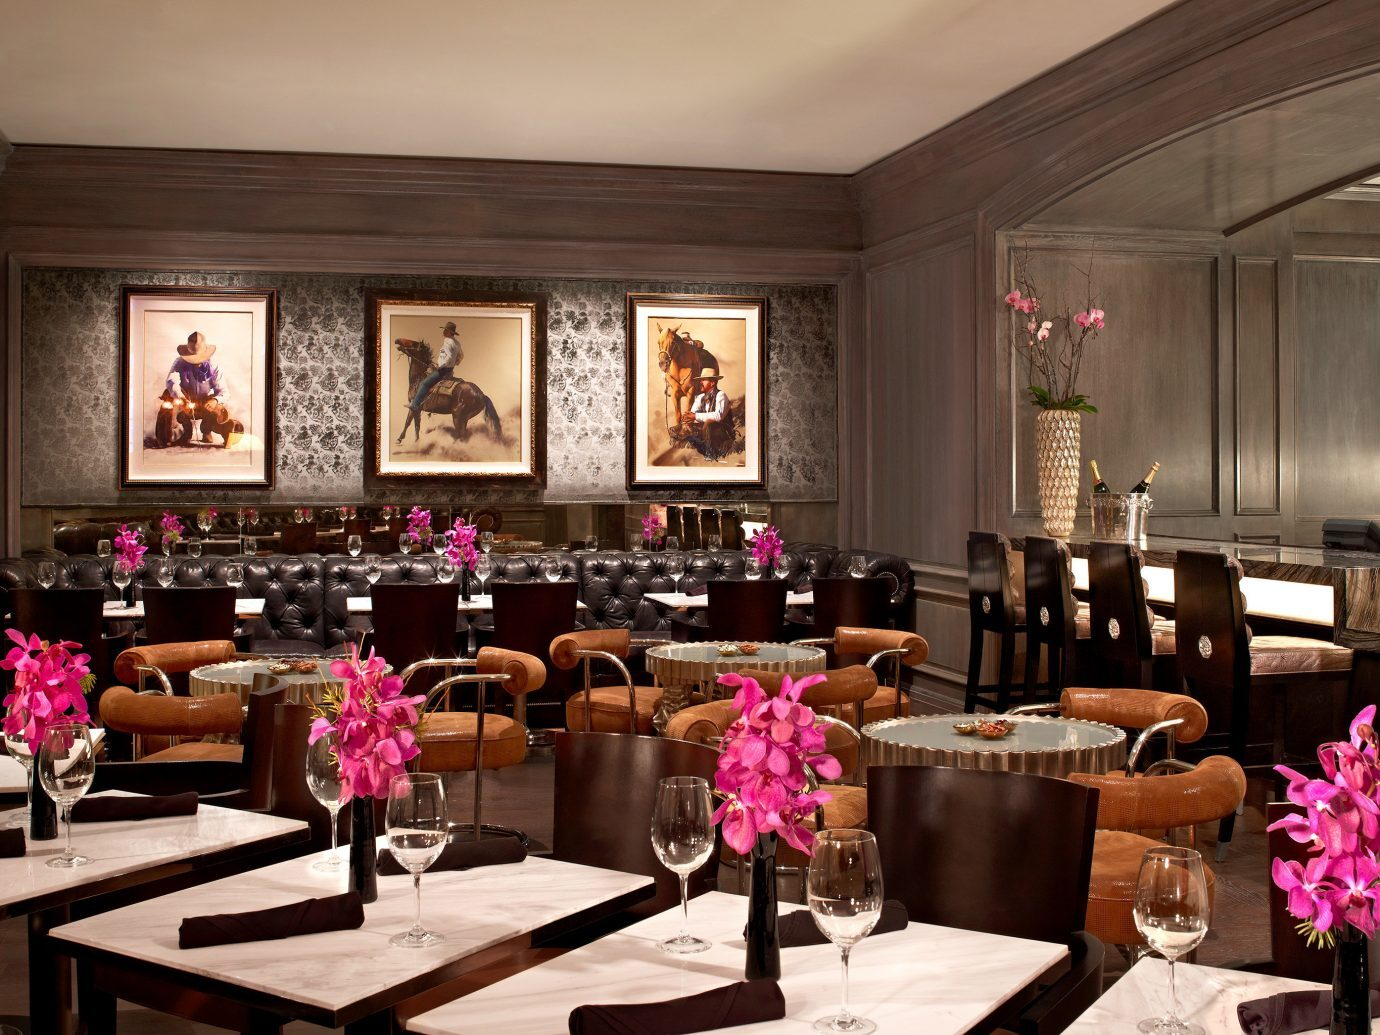 Restaurant at The St. Regis Aspen Resort